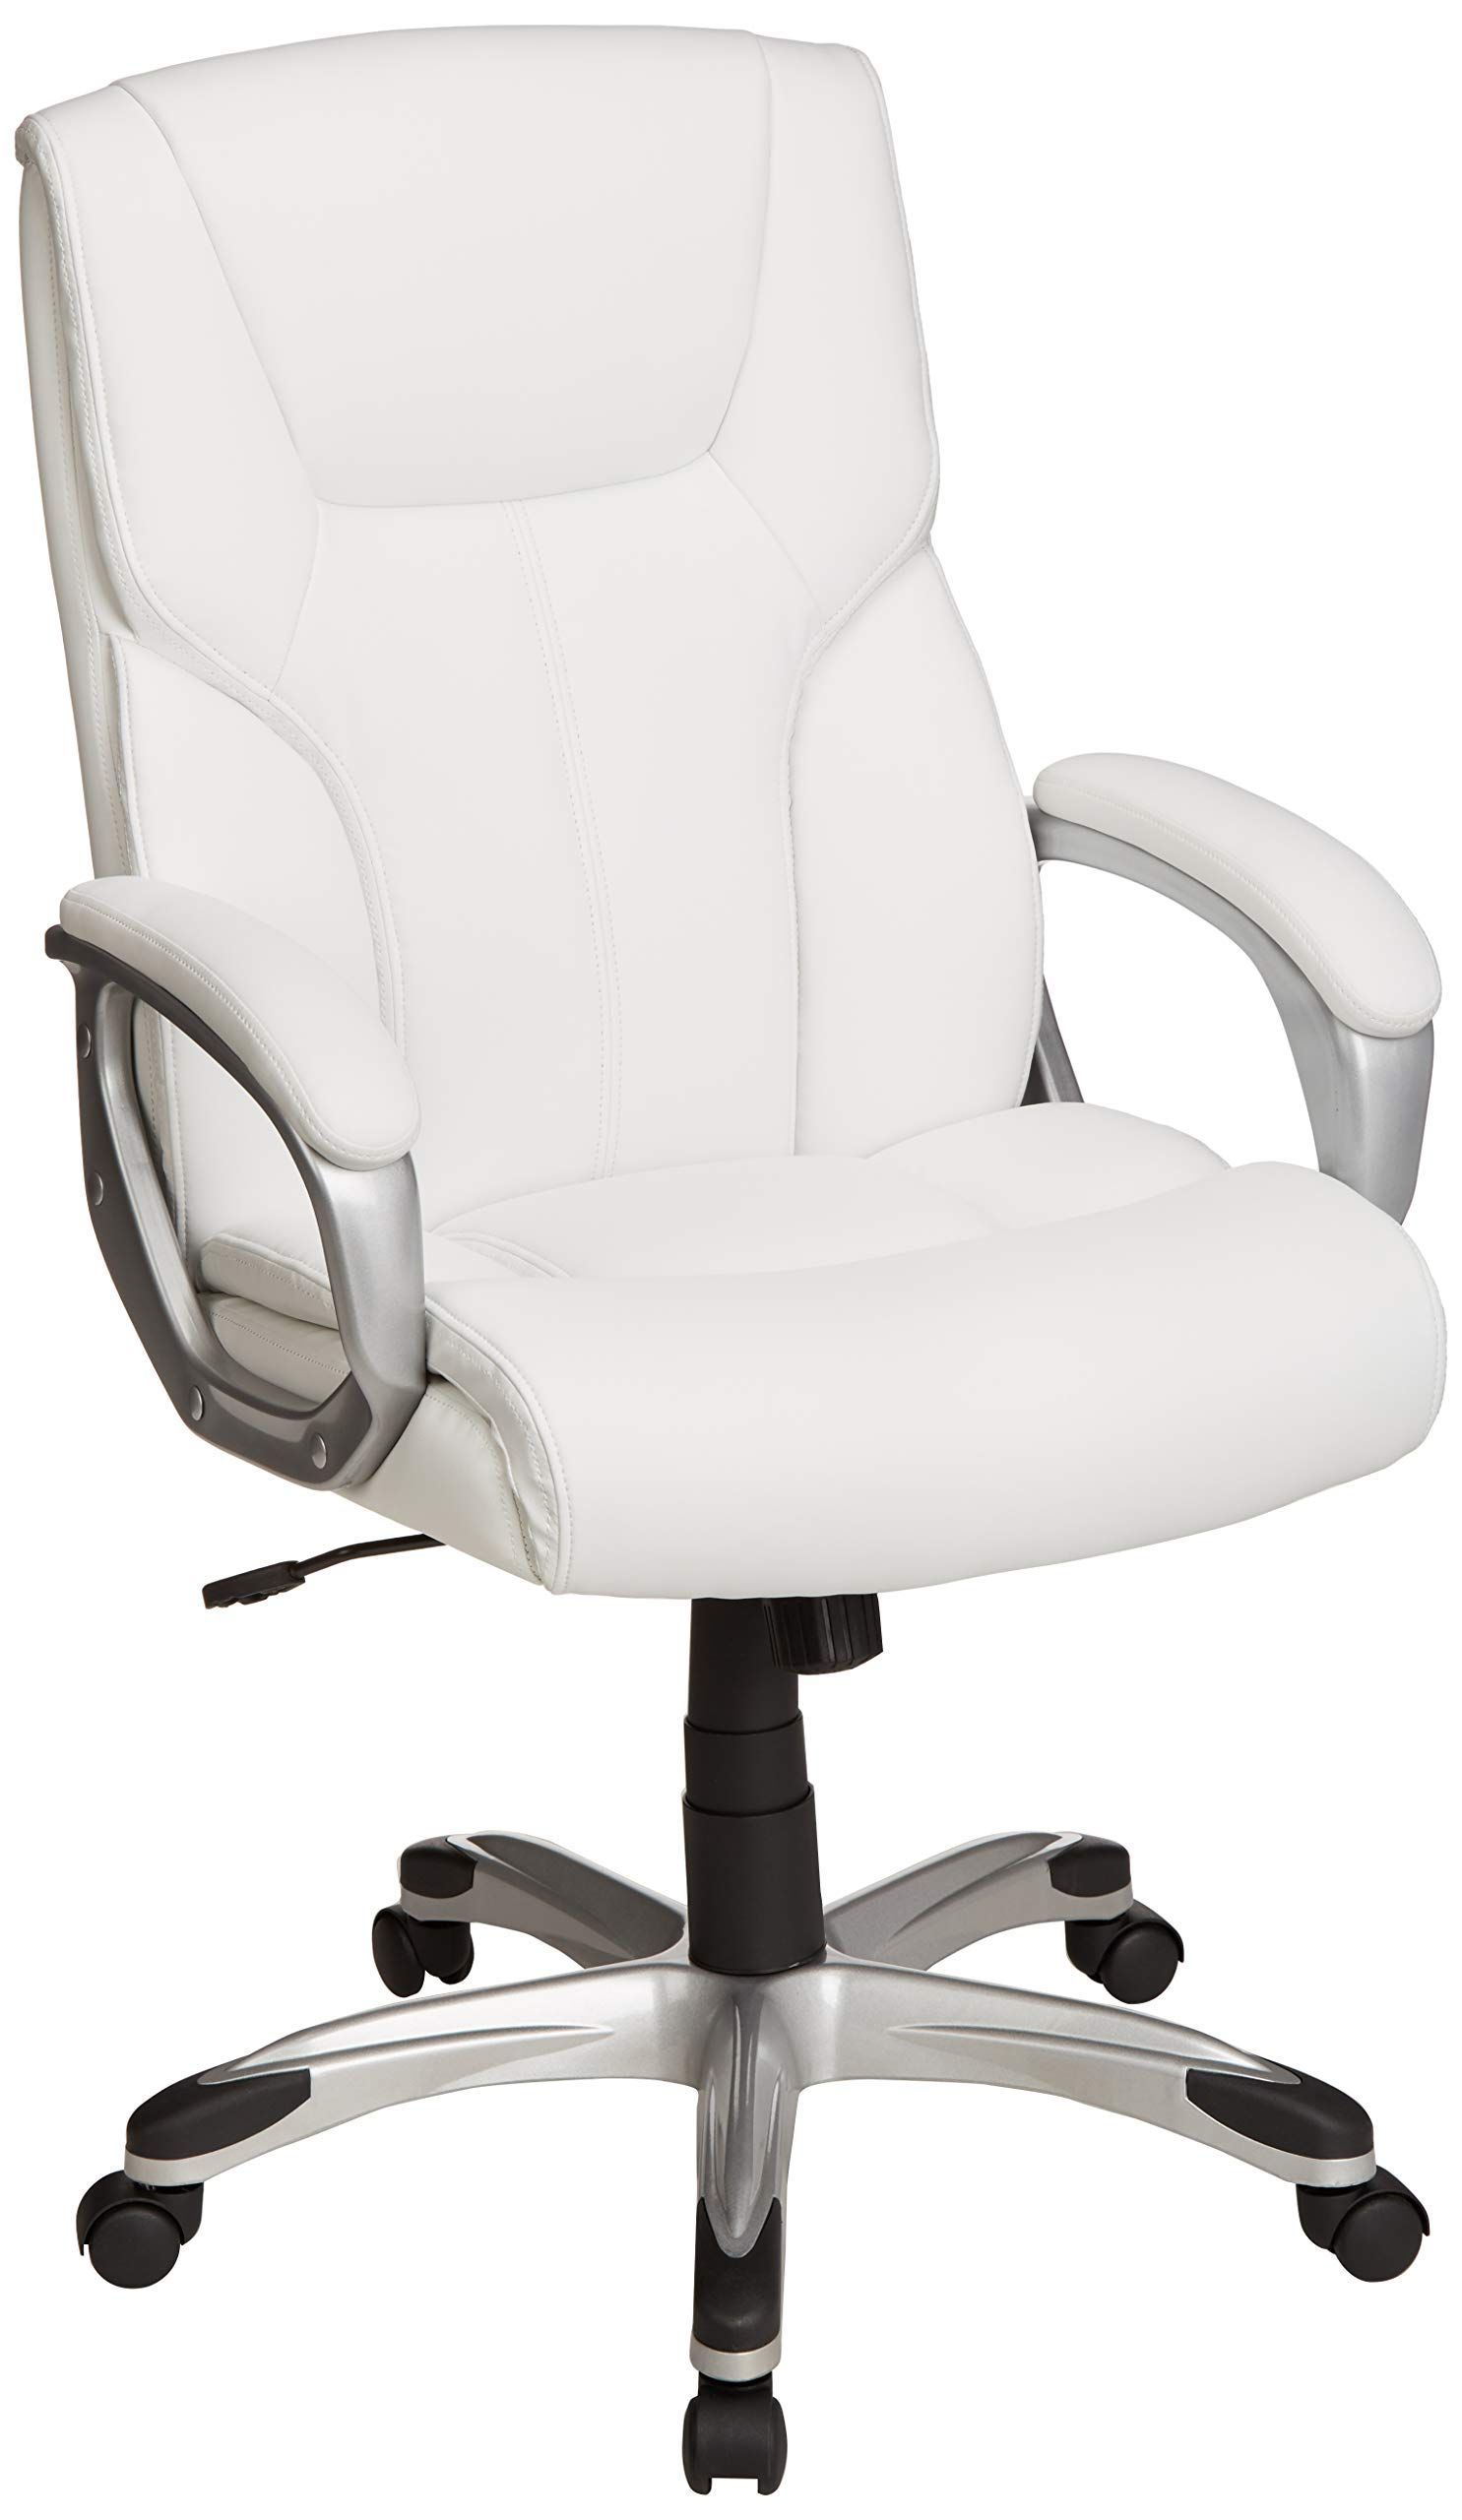 Amazon Com Amazonbasics High Back Executive Swivel Office Desk Chair White Wi Amazon White Office Chair Desk Chair Adjustable Office Desks